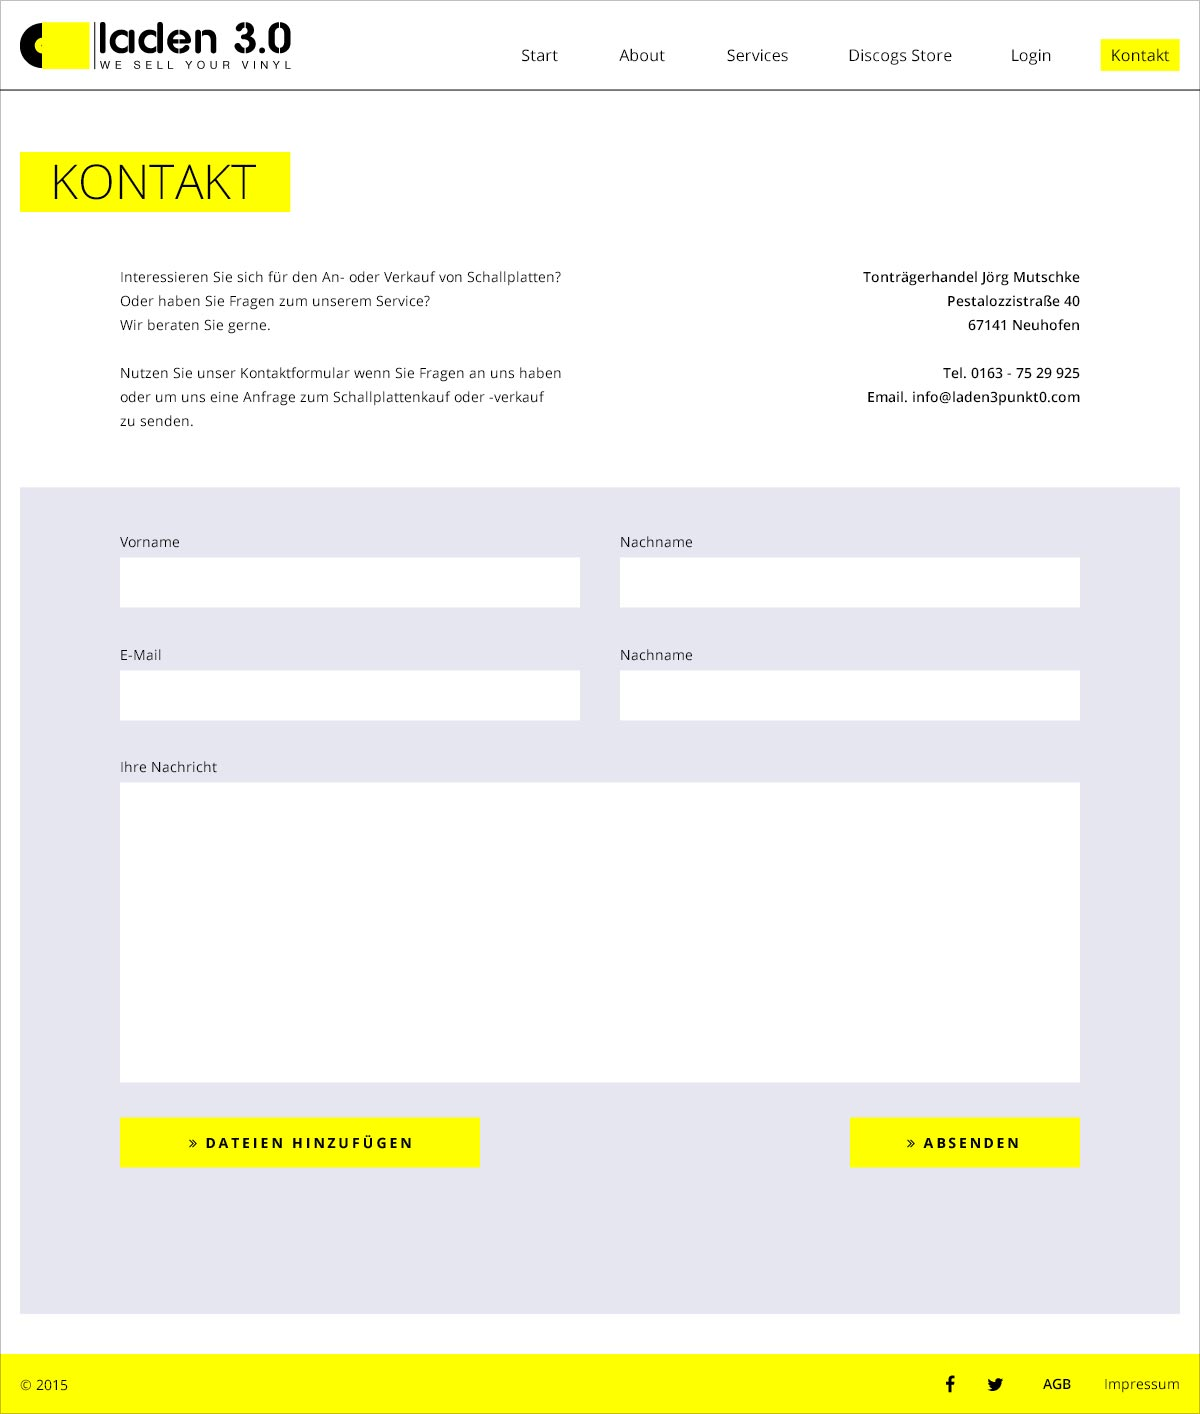 Laden 3.0 Webseite Kontakt Webdesign Gesa Siebert Kommunikationsdesign